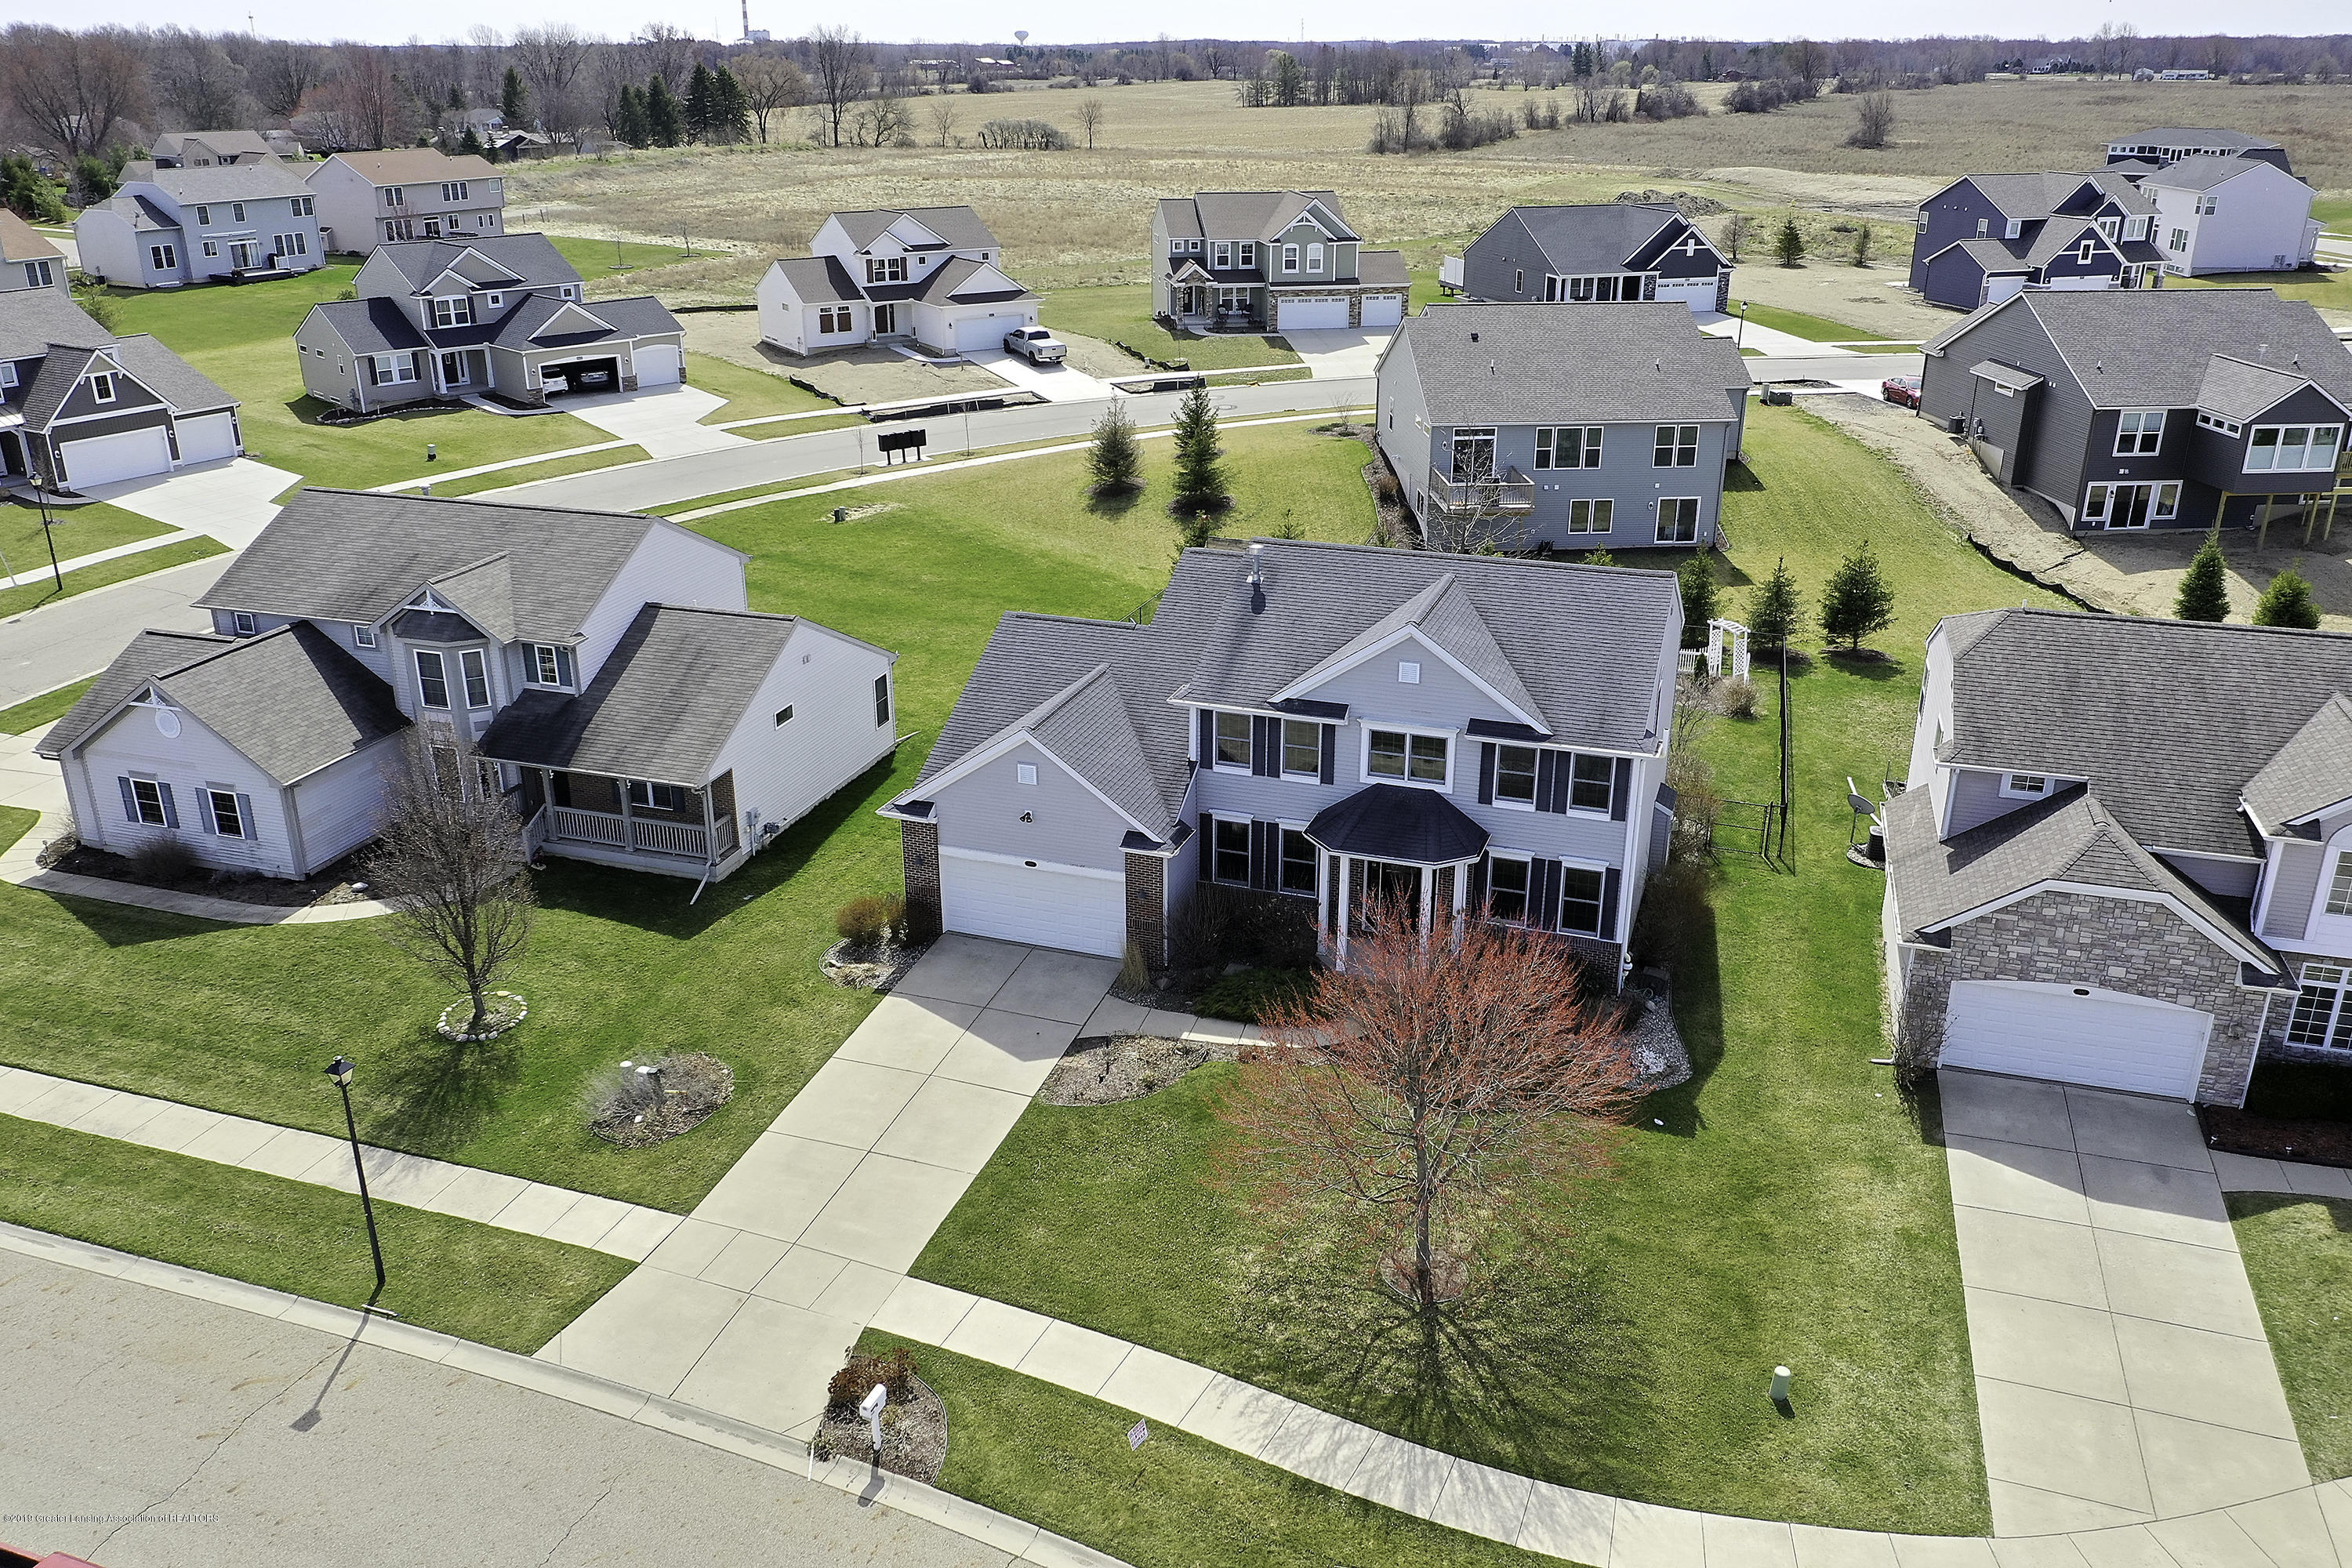 7490 Lonsdale Cir - DJI_0149 copy - 1